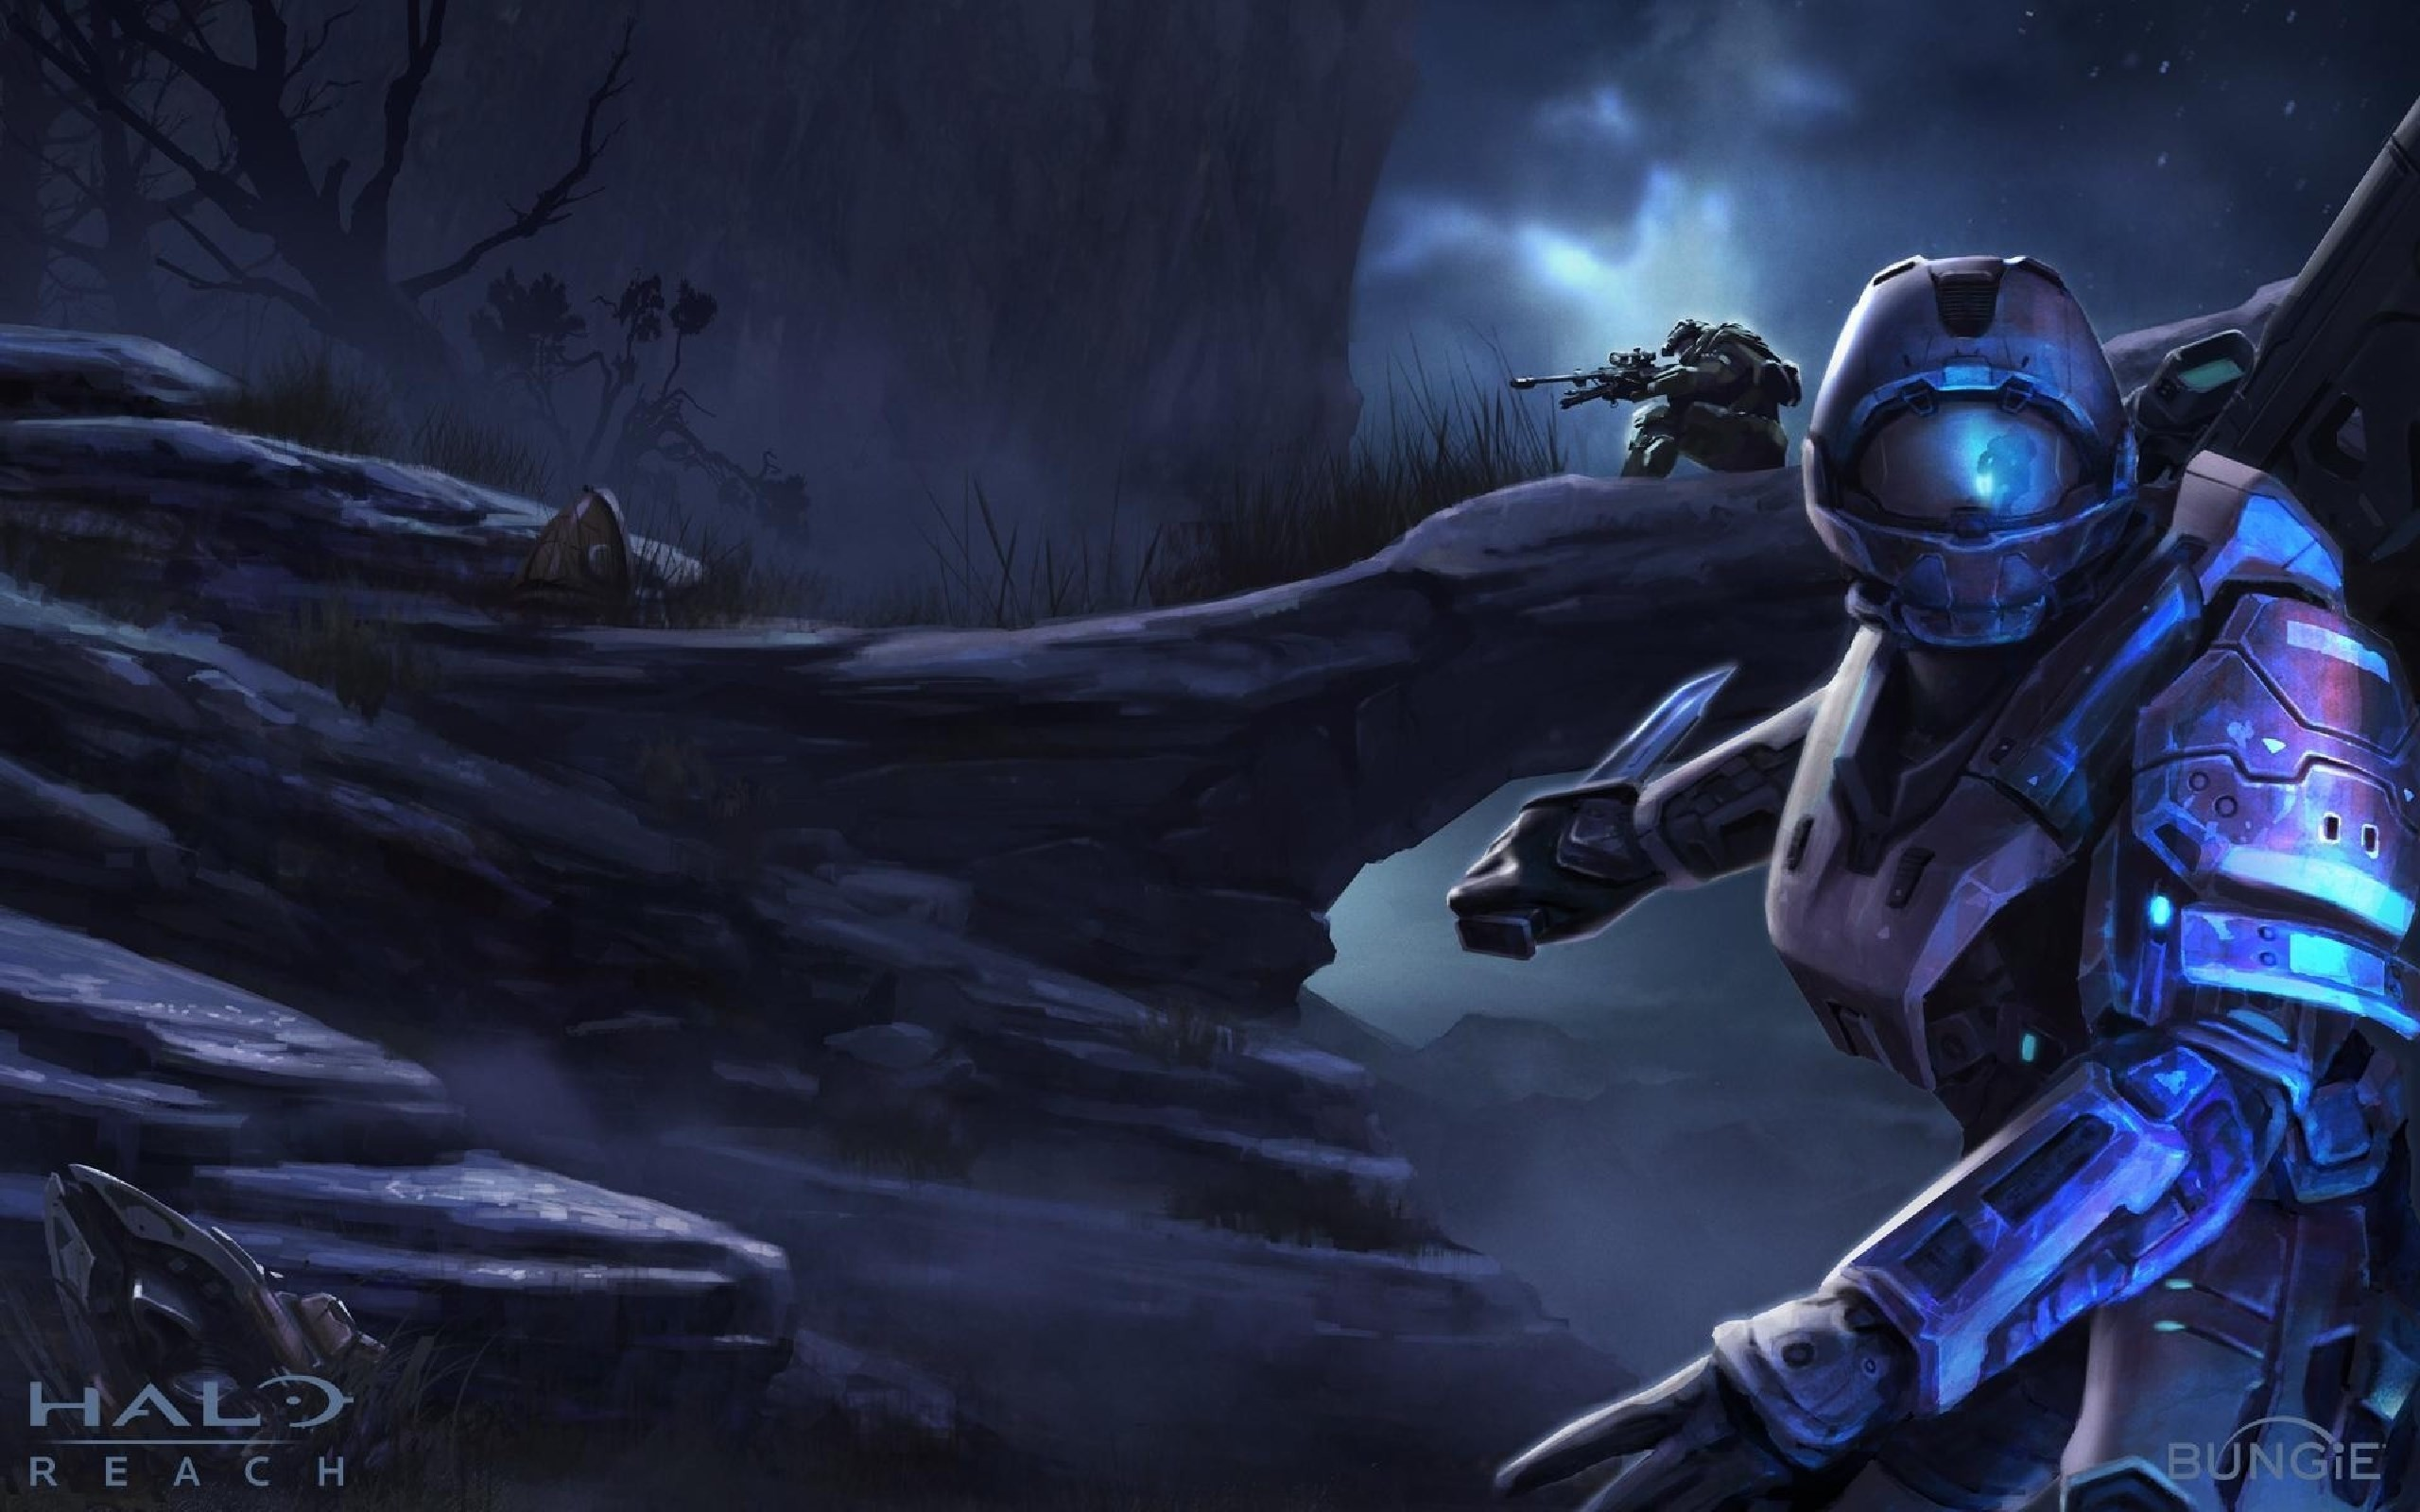 2560x1600 free-halo-reach-backgrounds-2560×1600-for-iphone-5s-WTG3052223